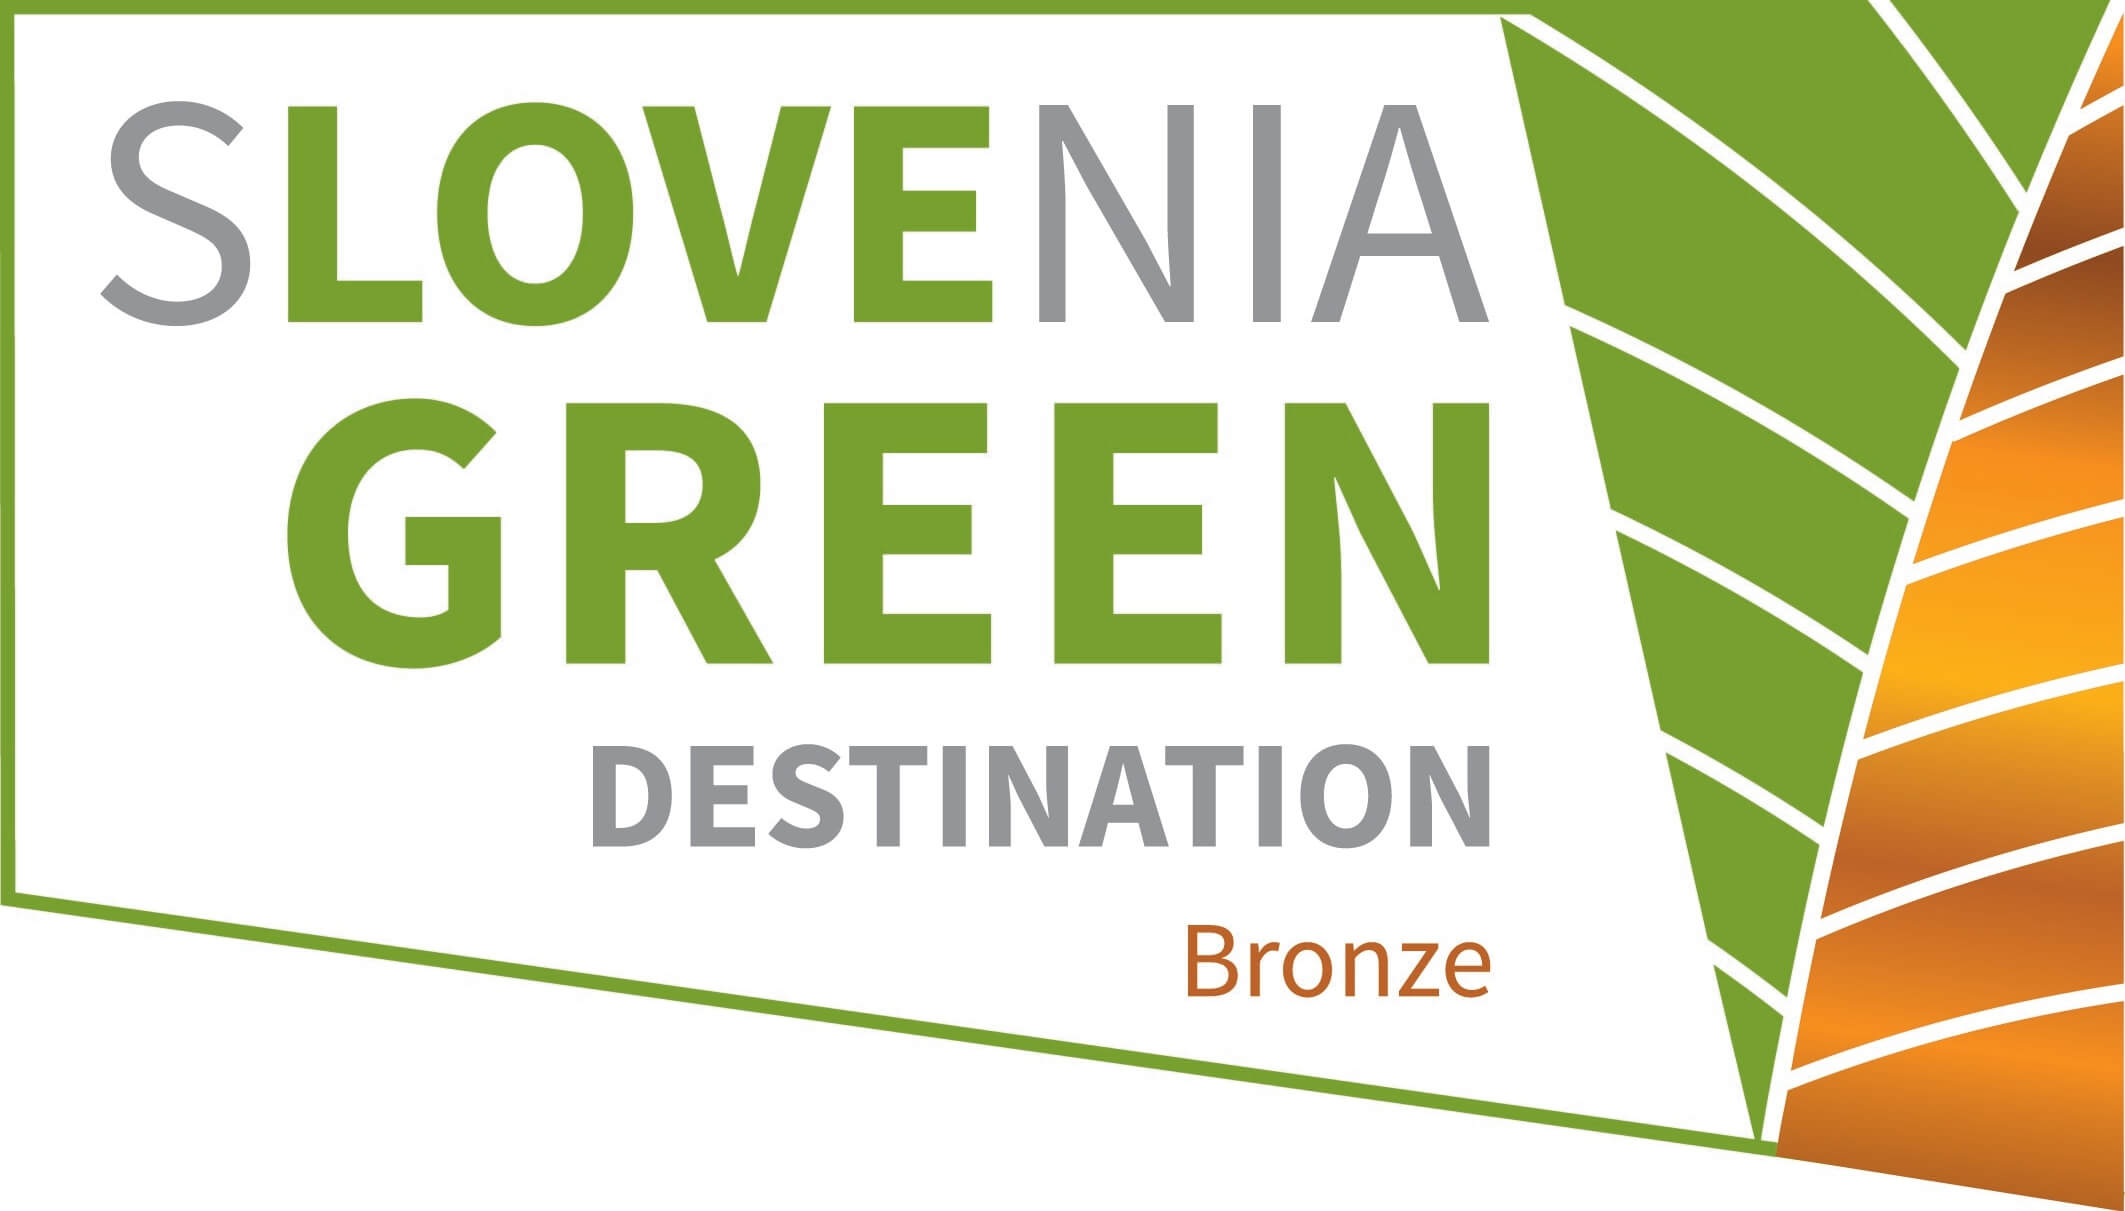 slovenia-green-bronze